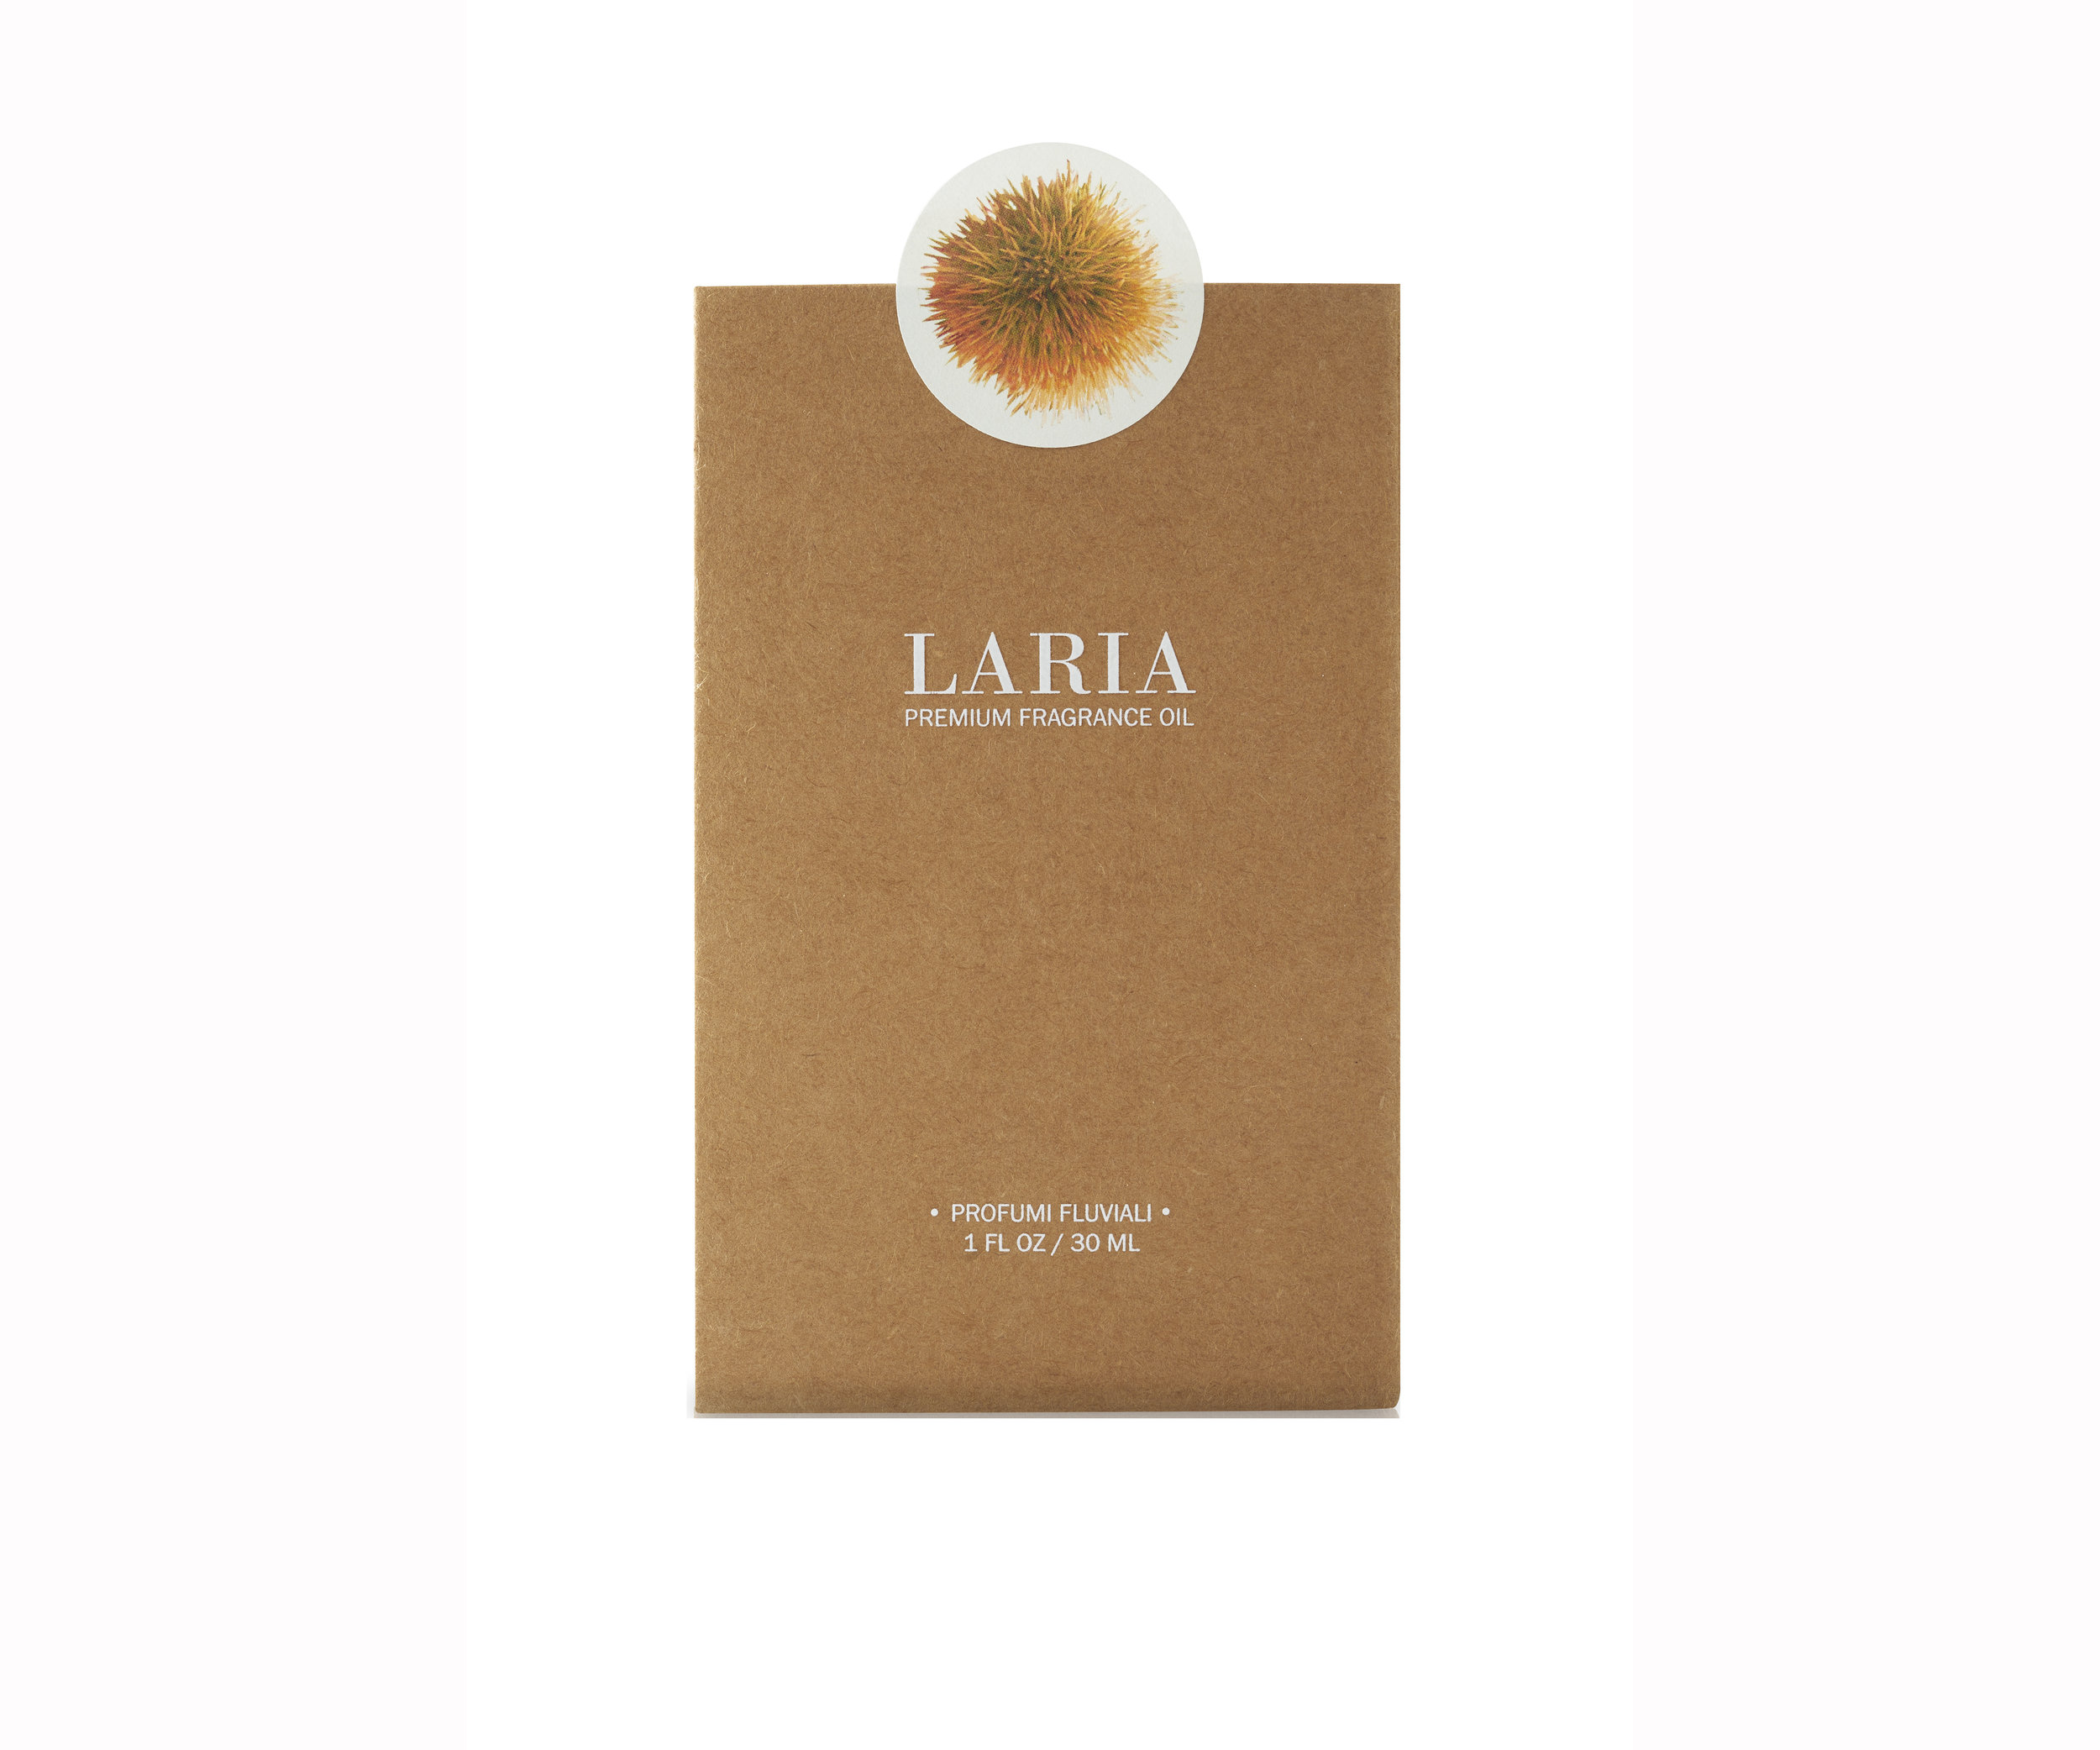 Laria Premium Fragrance Oil Box 1awide.jpg